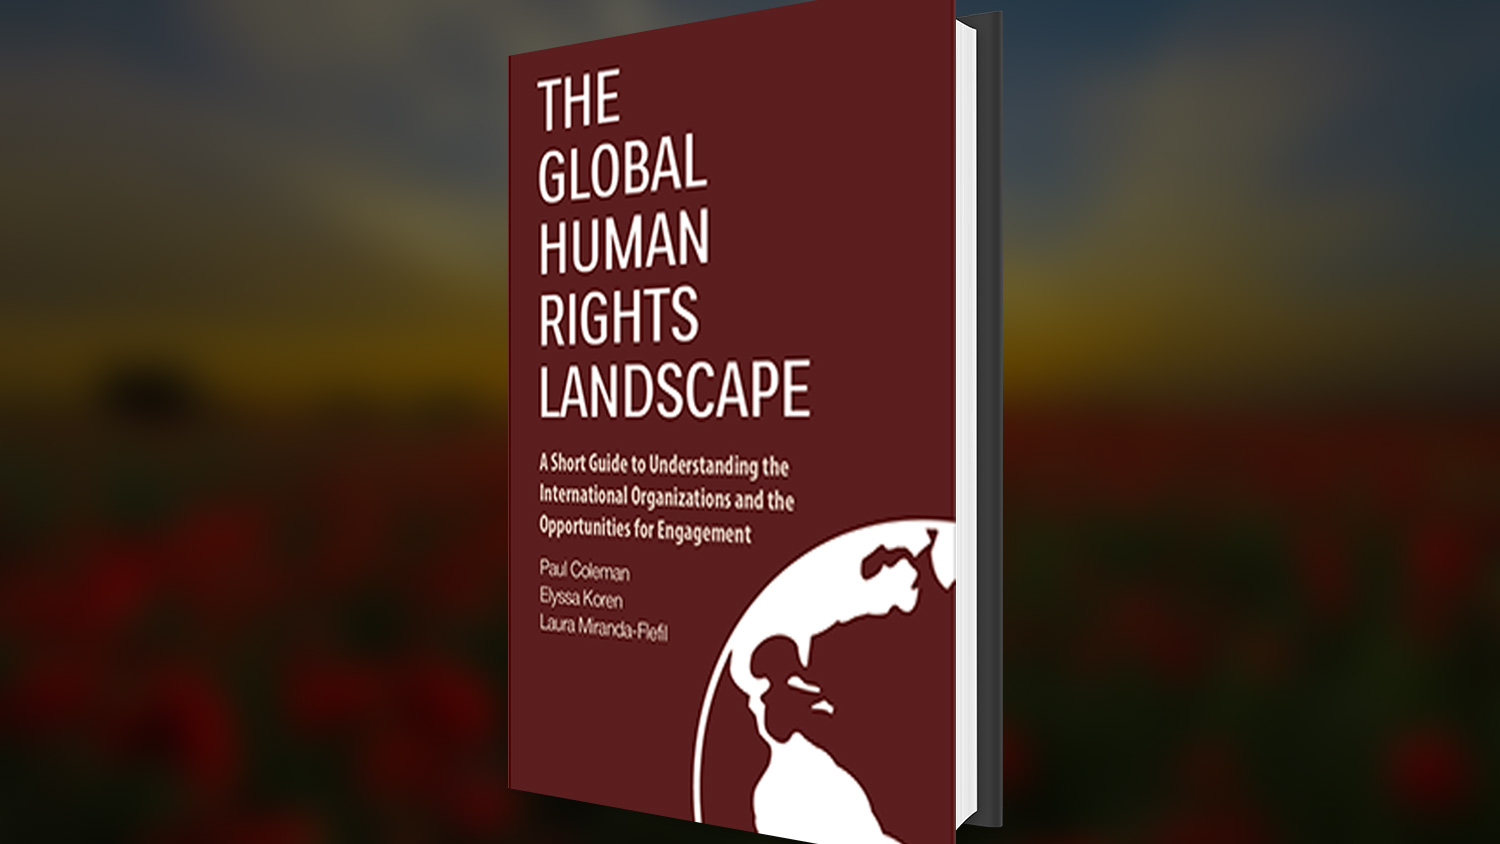 img-right-landscape-cover